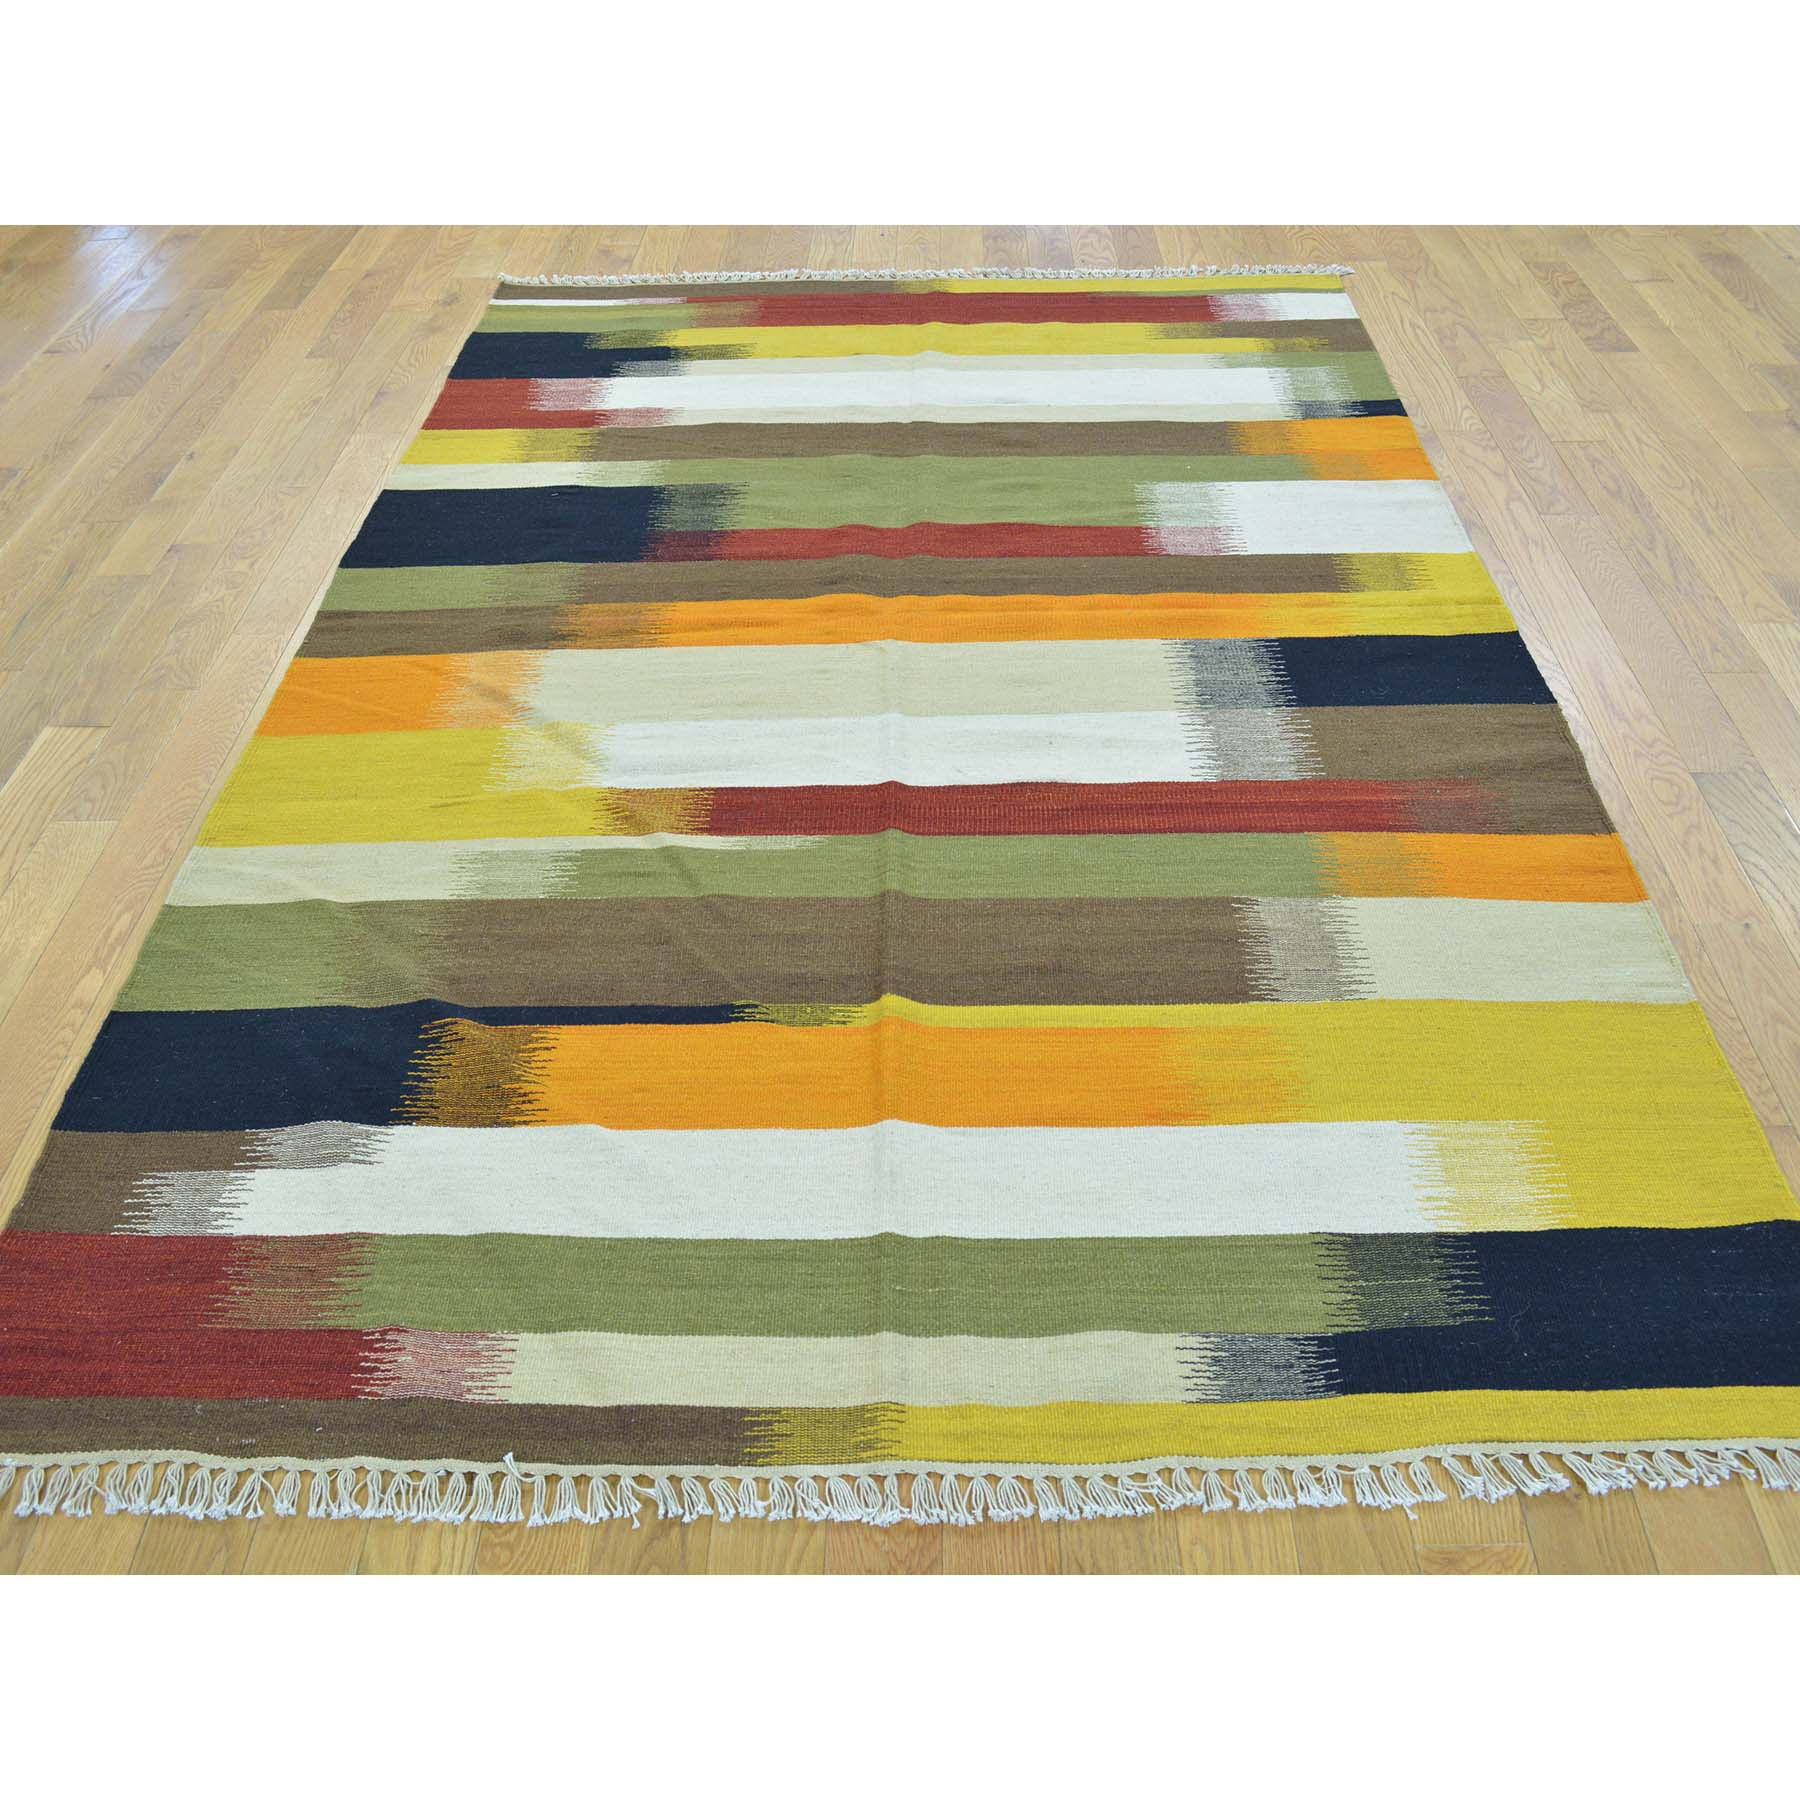 "Handmade Flat Weave Rectangle Rug > Design# SH30053 > Size: 5'-0"" x 8'-0"" [ONLINE ONLY]"